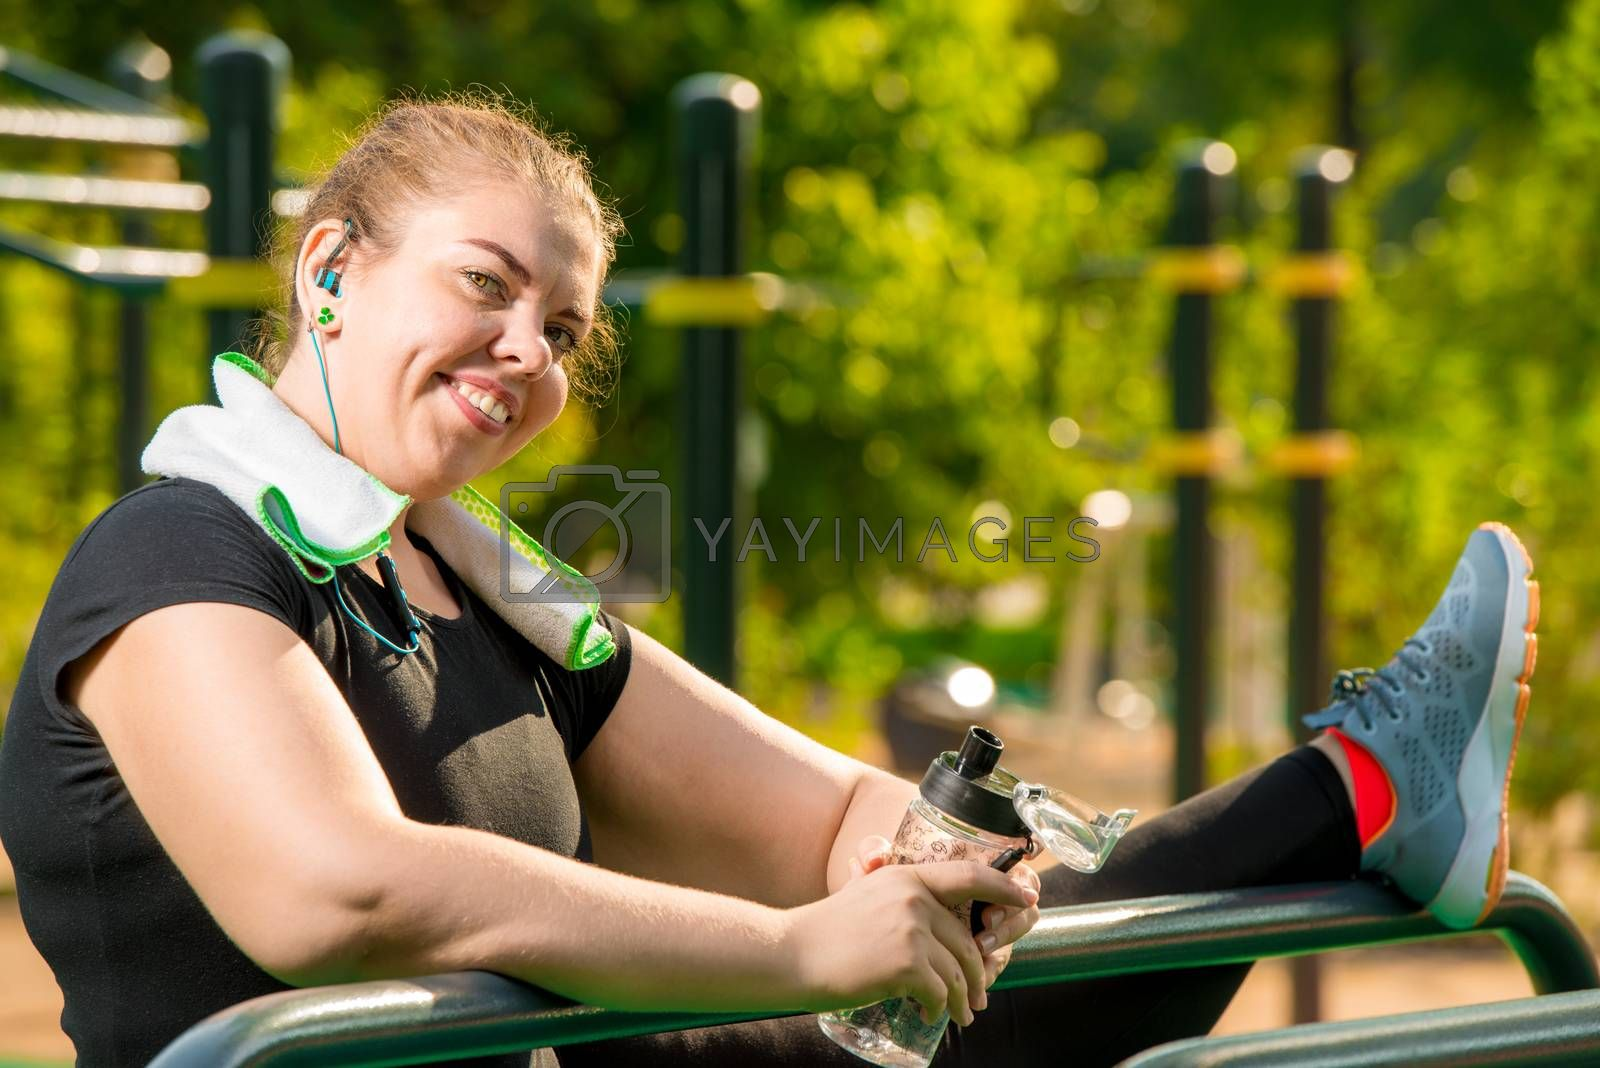 flexible plus size woman engaged with a port on the playground i by Labunskiy K.